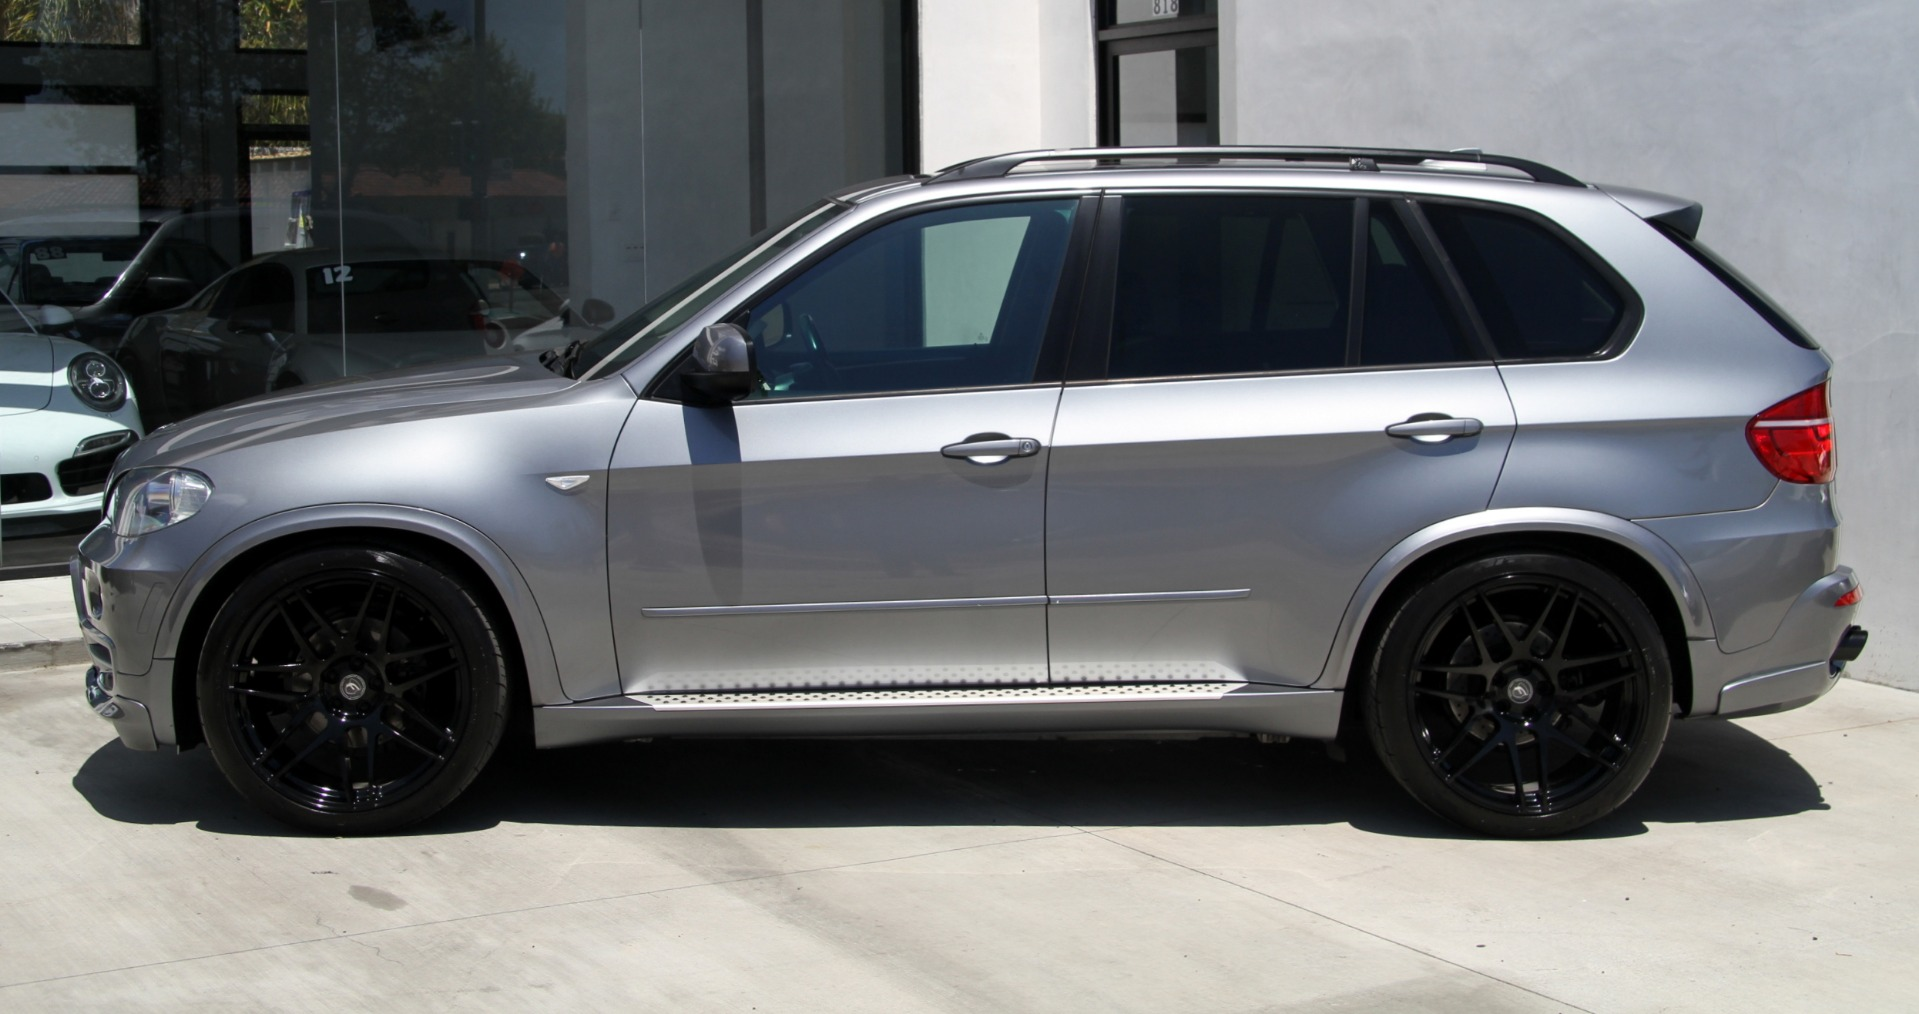 2009 Bmw X5 Xdrive30i Stock 263378 For Sale Near Redondo